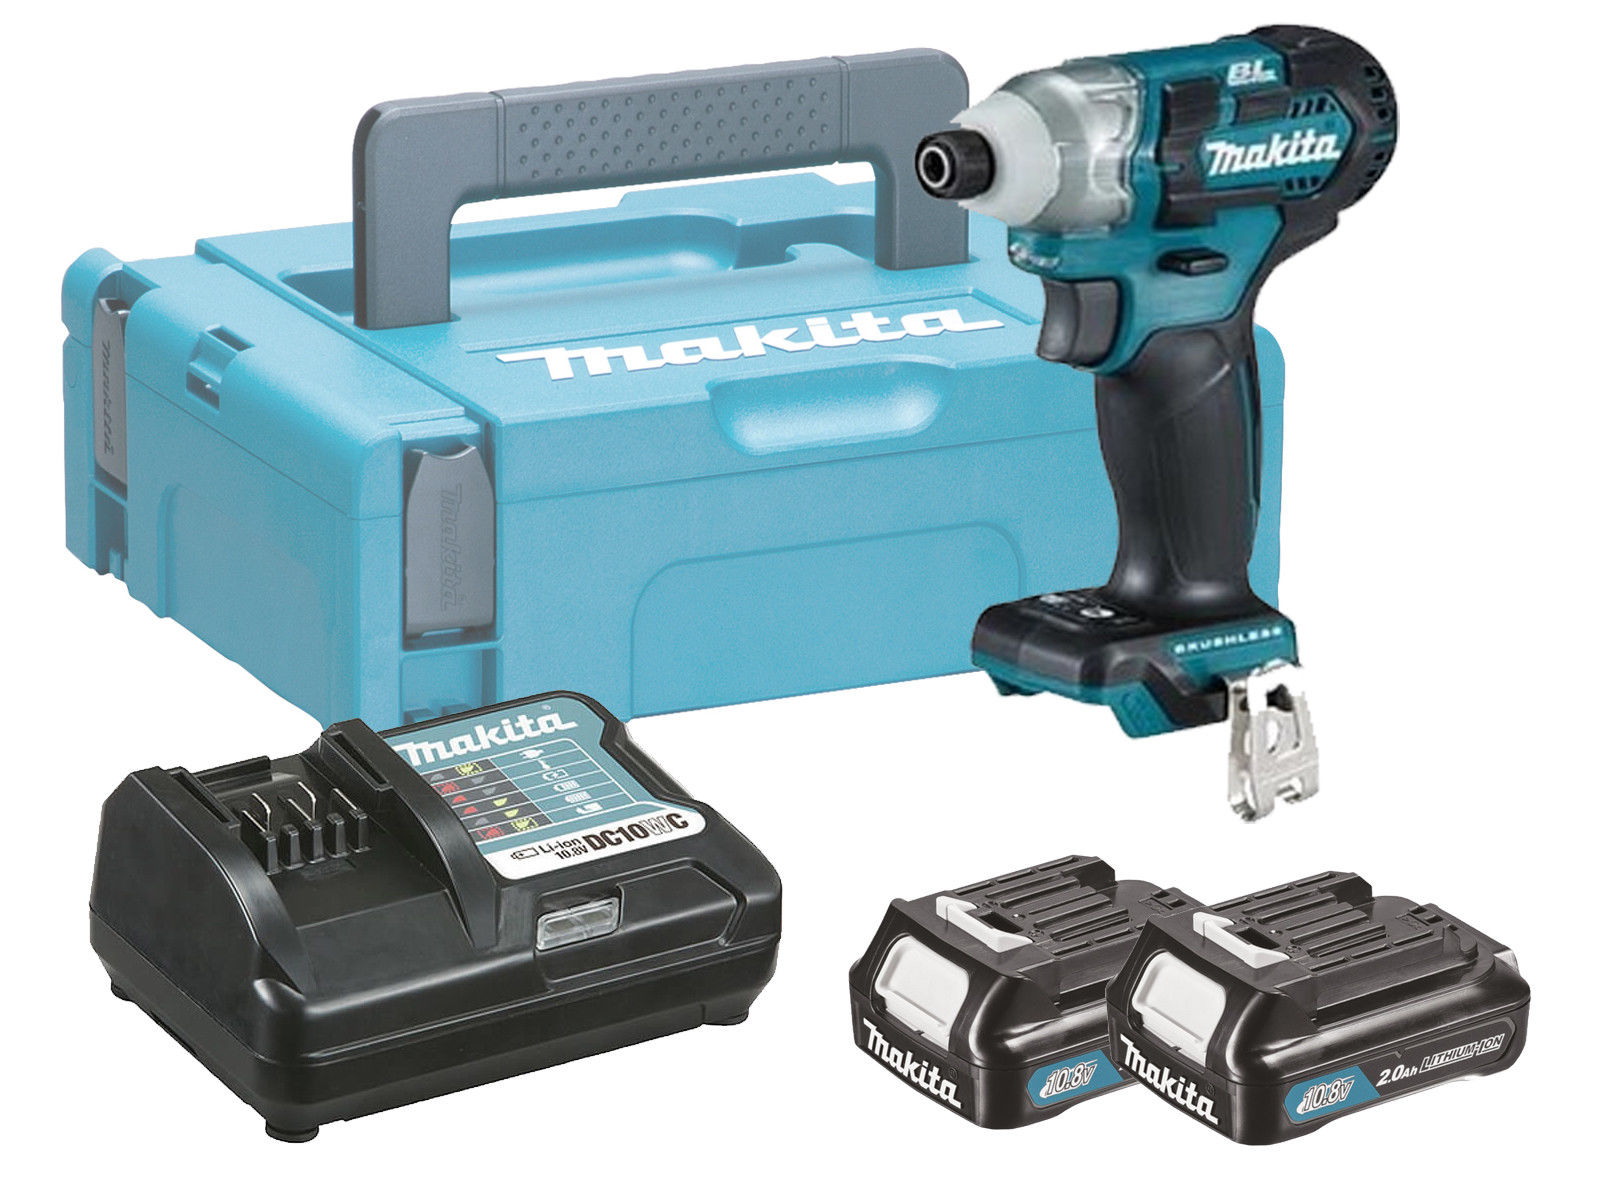 MAKITA 10.8V CXT BRUSHLESS IMPACT DRIVER - 2.0AH PACK